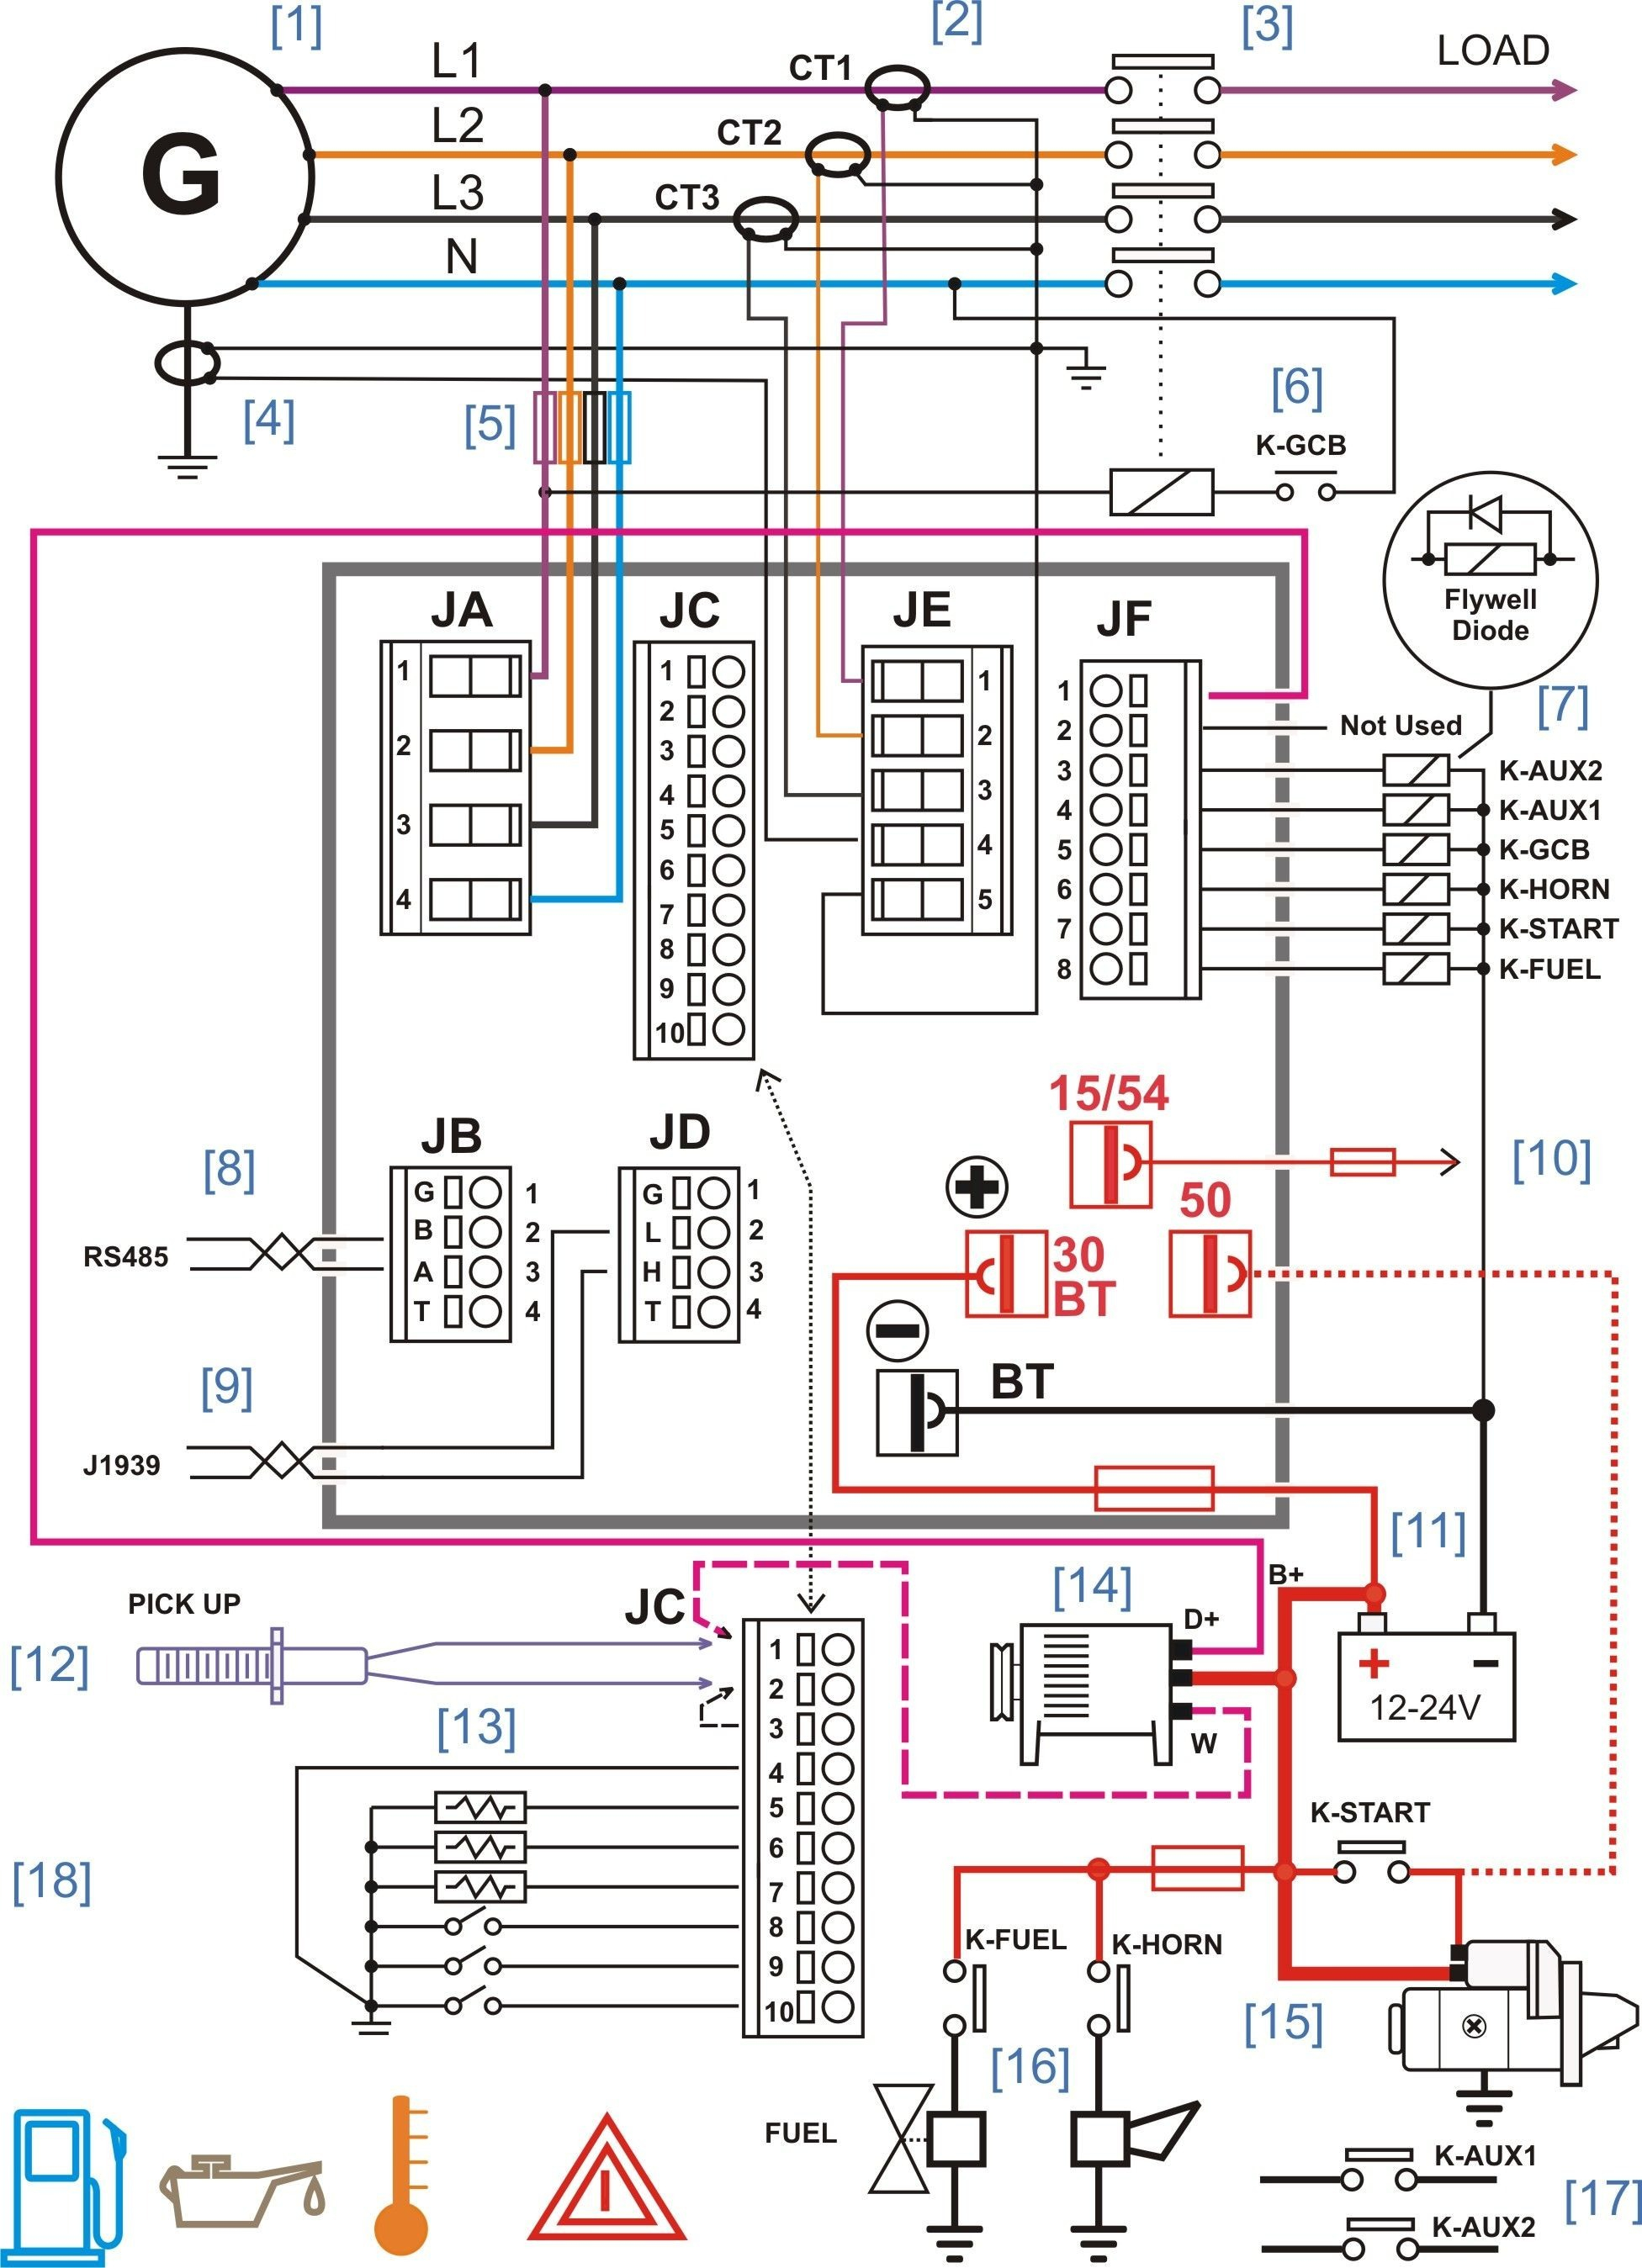 wiring diagram software free download Collection-diagram creator free best of circuit diagram creator new. DOWNLOAD. Wiring Diagram ...